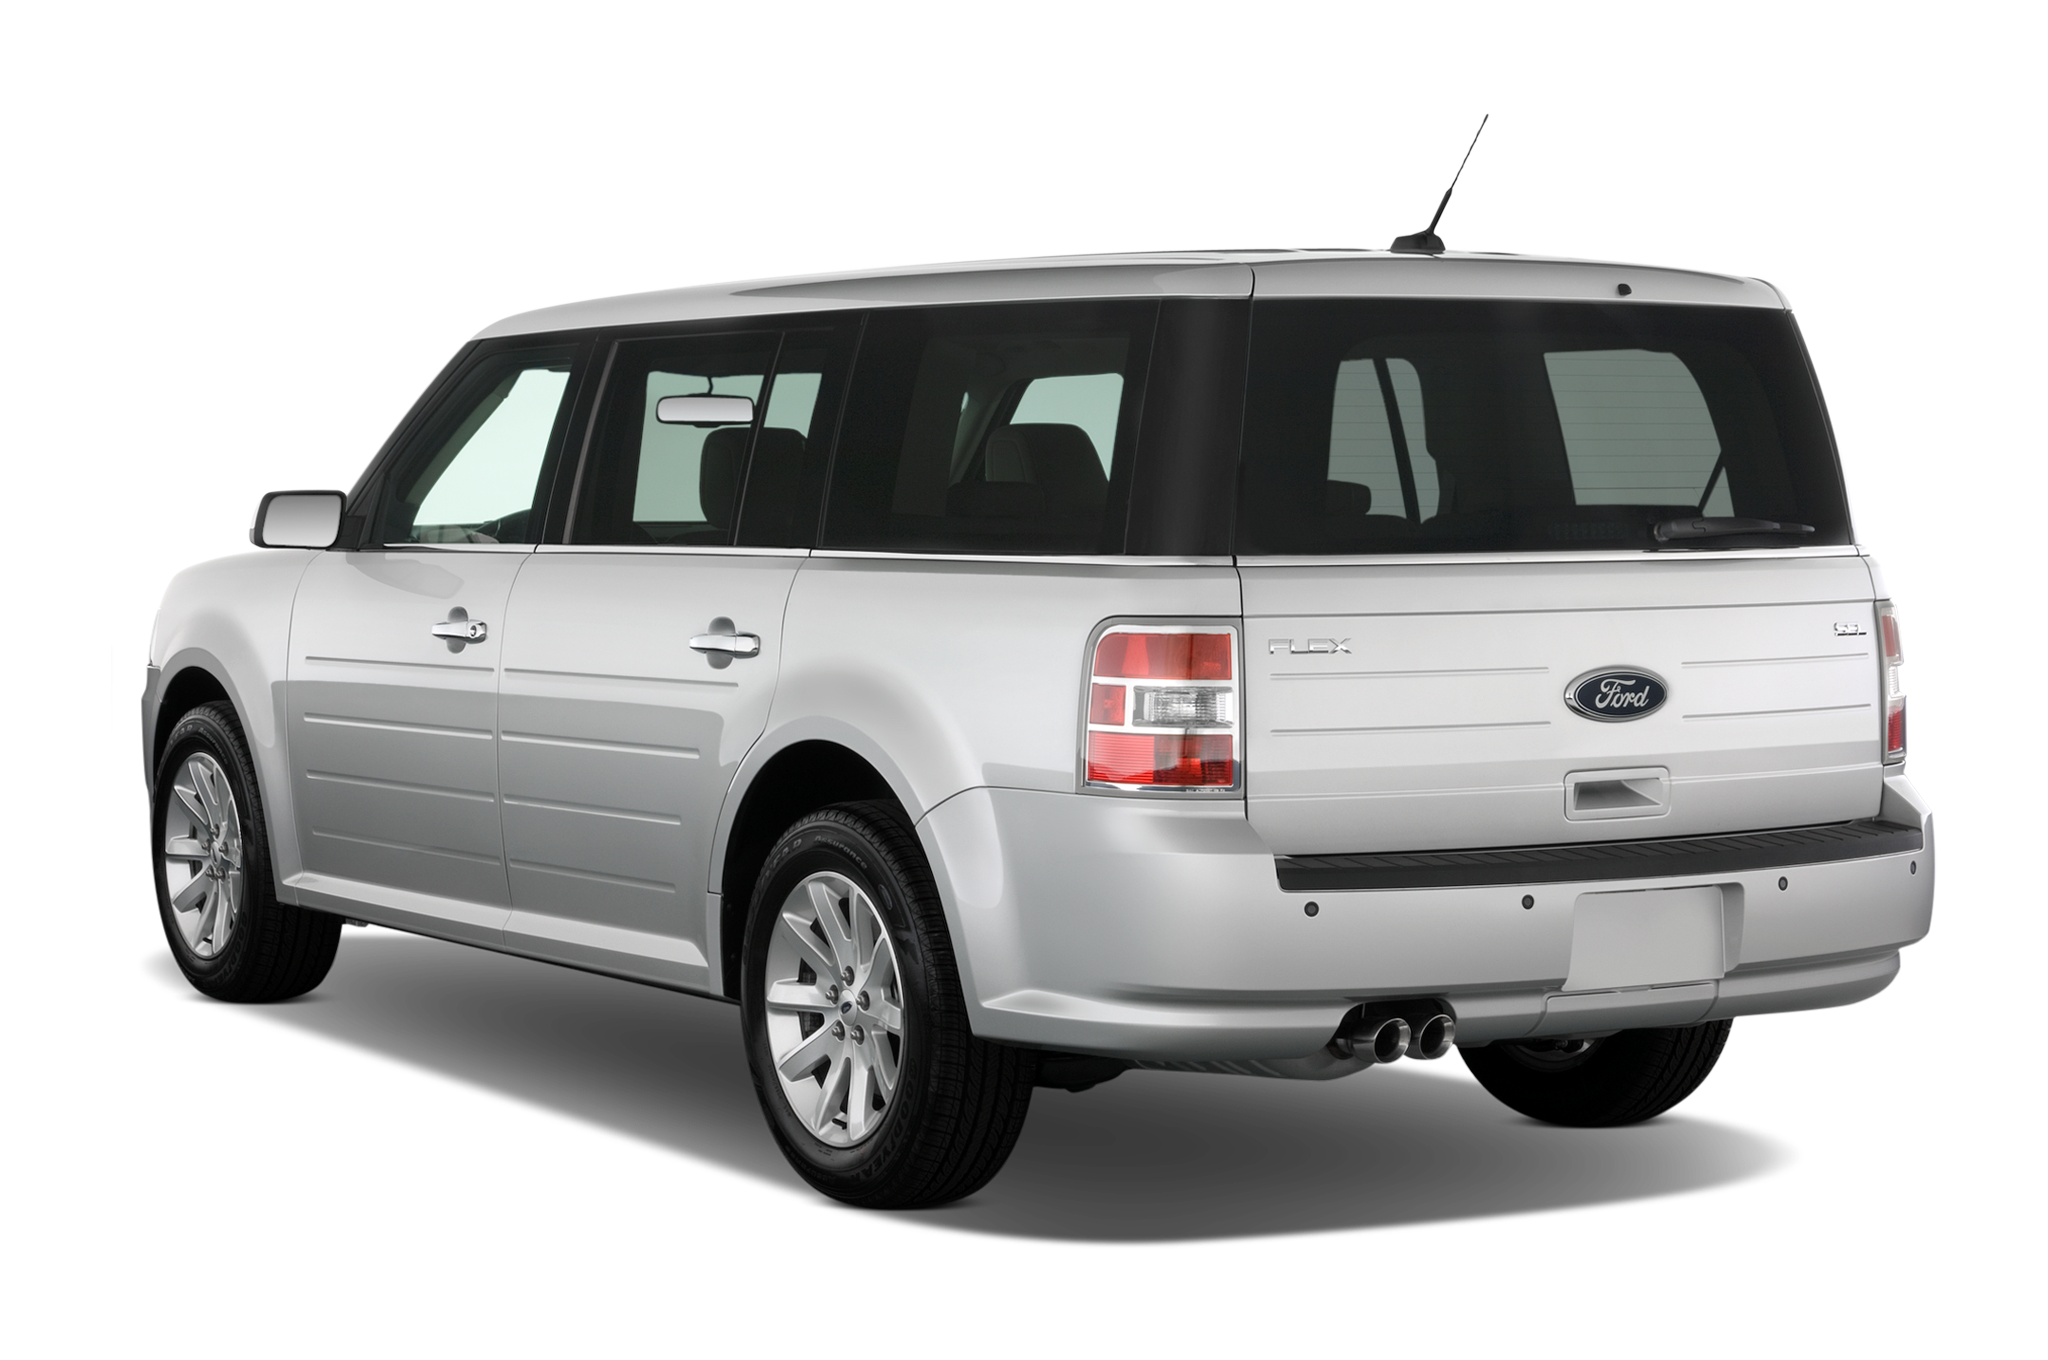 2010 ford flex with ecoboost ford crossover suv review. Black Bedroom Furniture Sets. Home Design Ideas